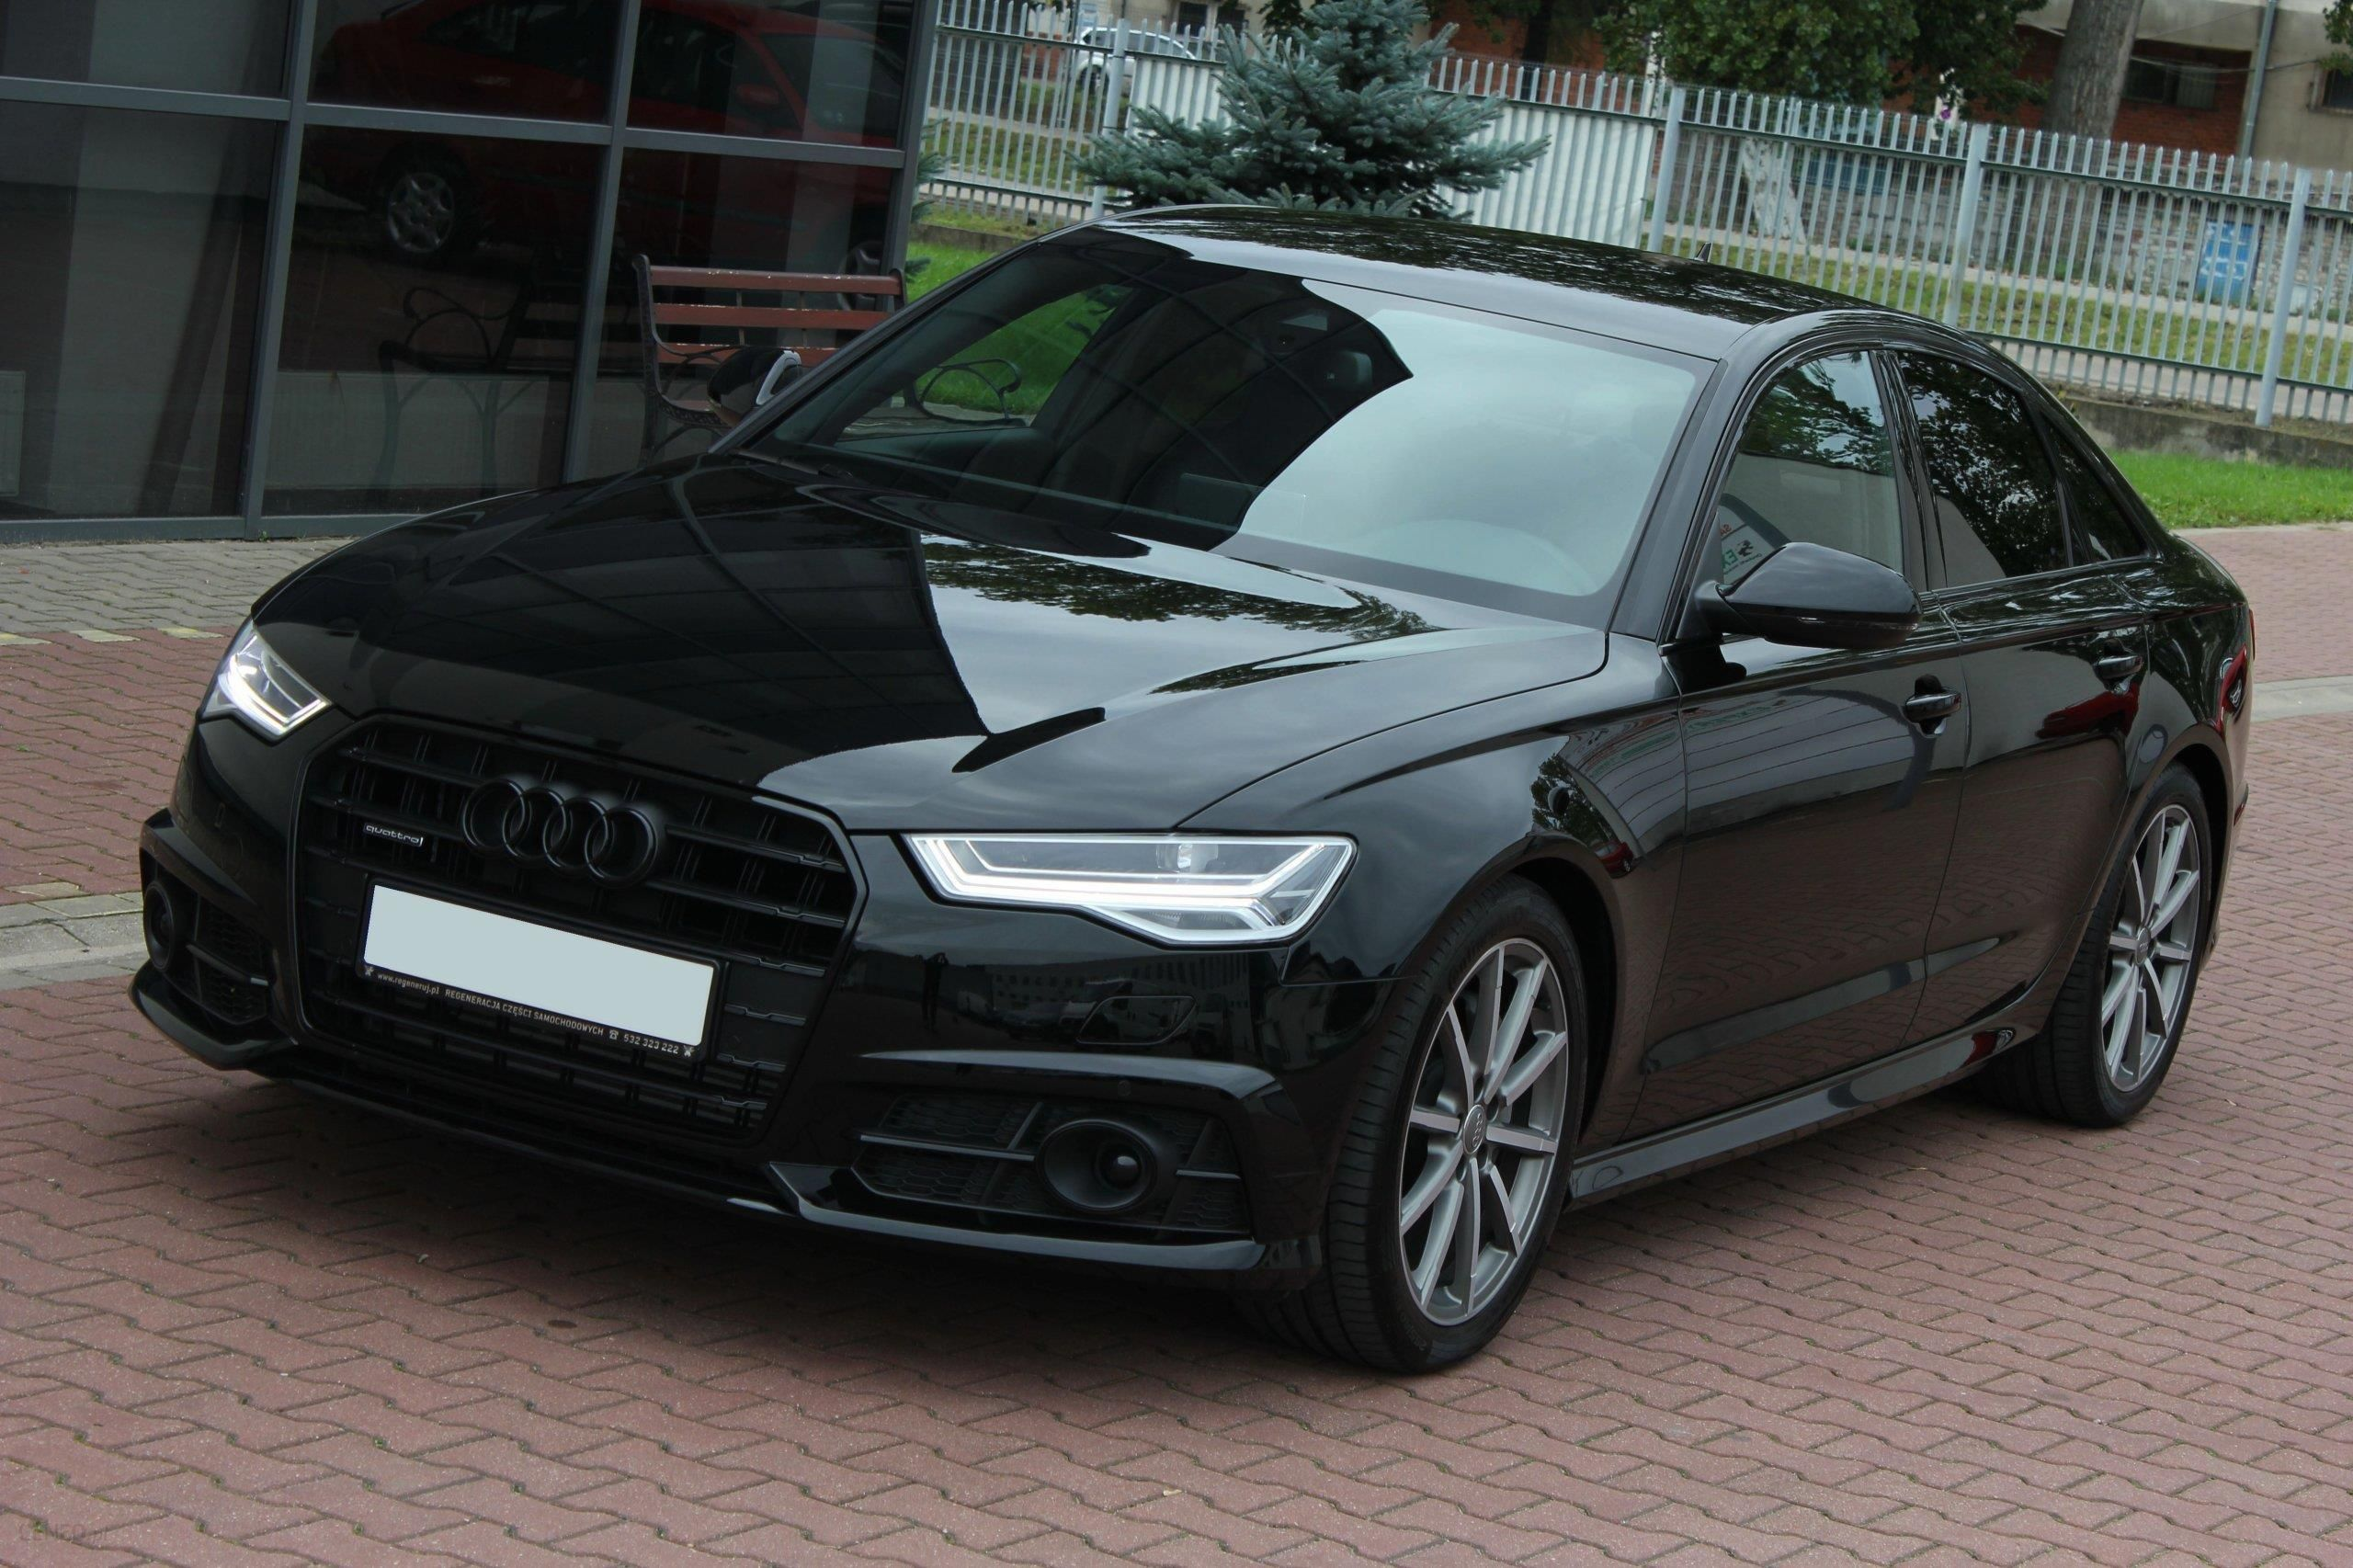 audi a6 c7 2017 benzyna 252km sedan czarny opinie i ceny. Black Bedroom Furniture Sets. Home Design Ideas